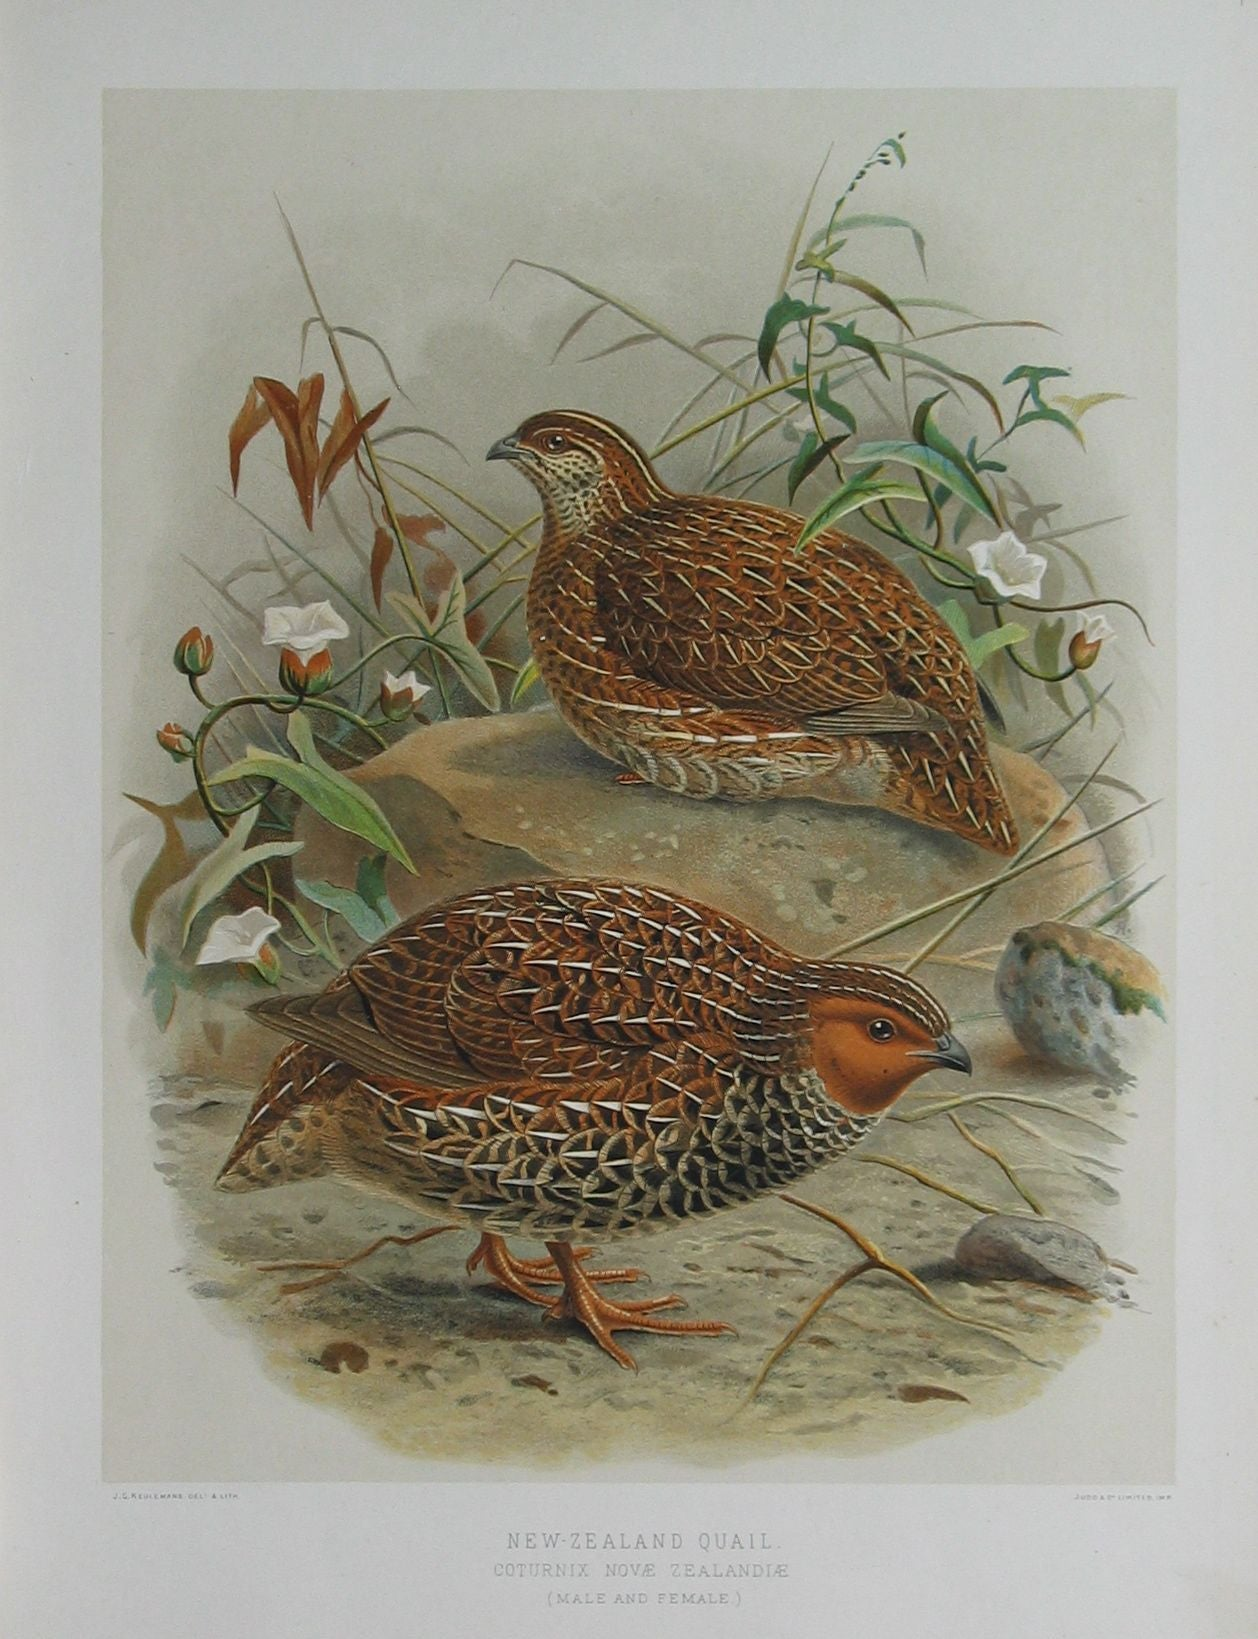 New Zealand Quail